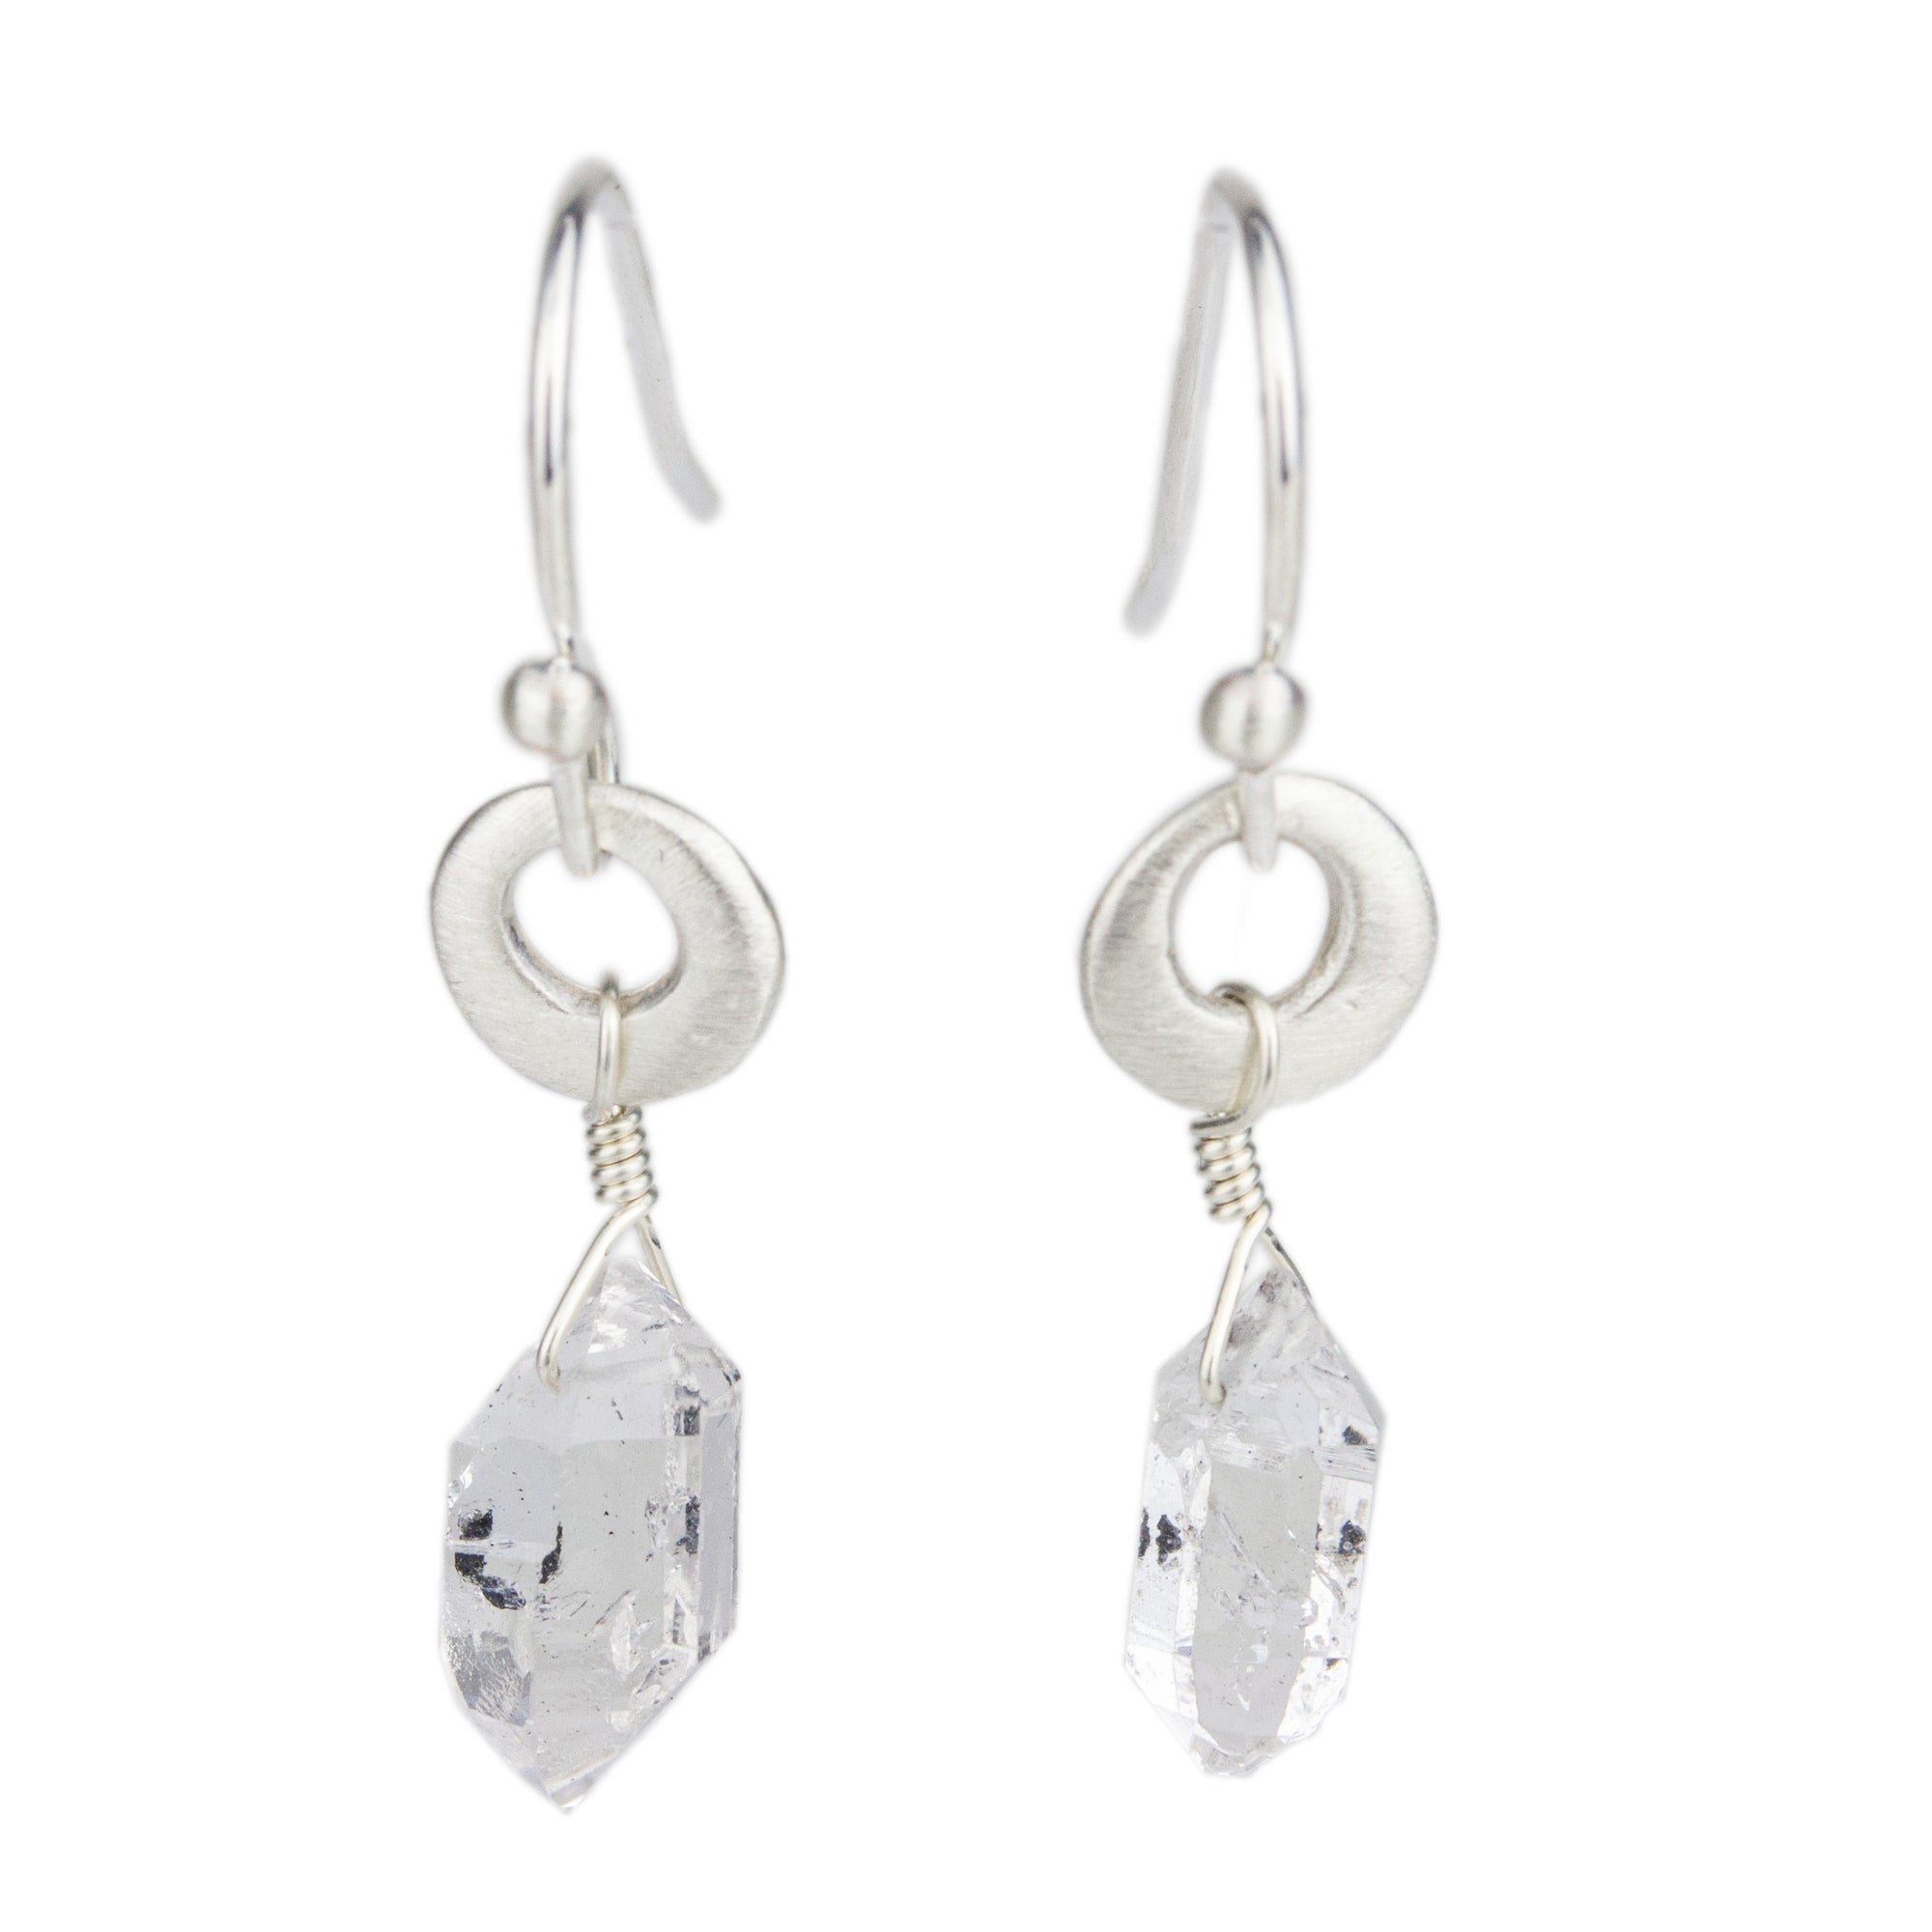 Herkimer Earrings